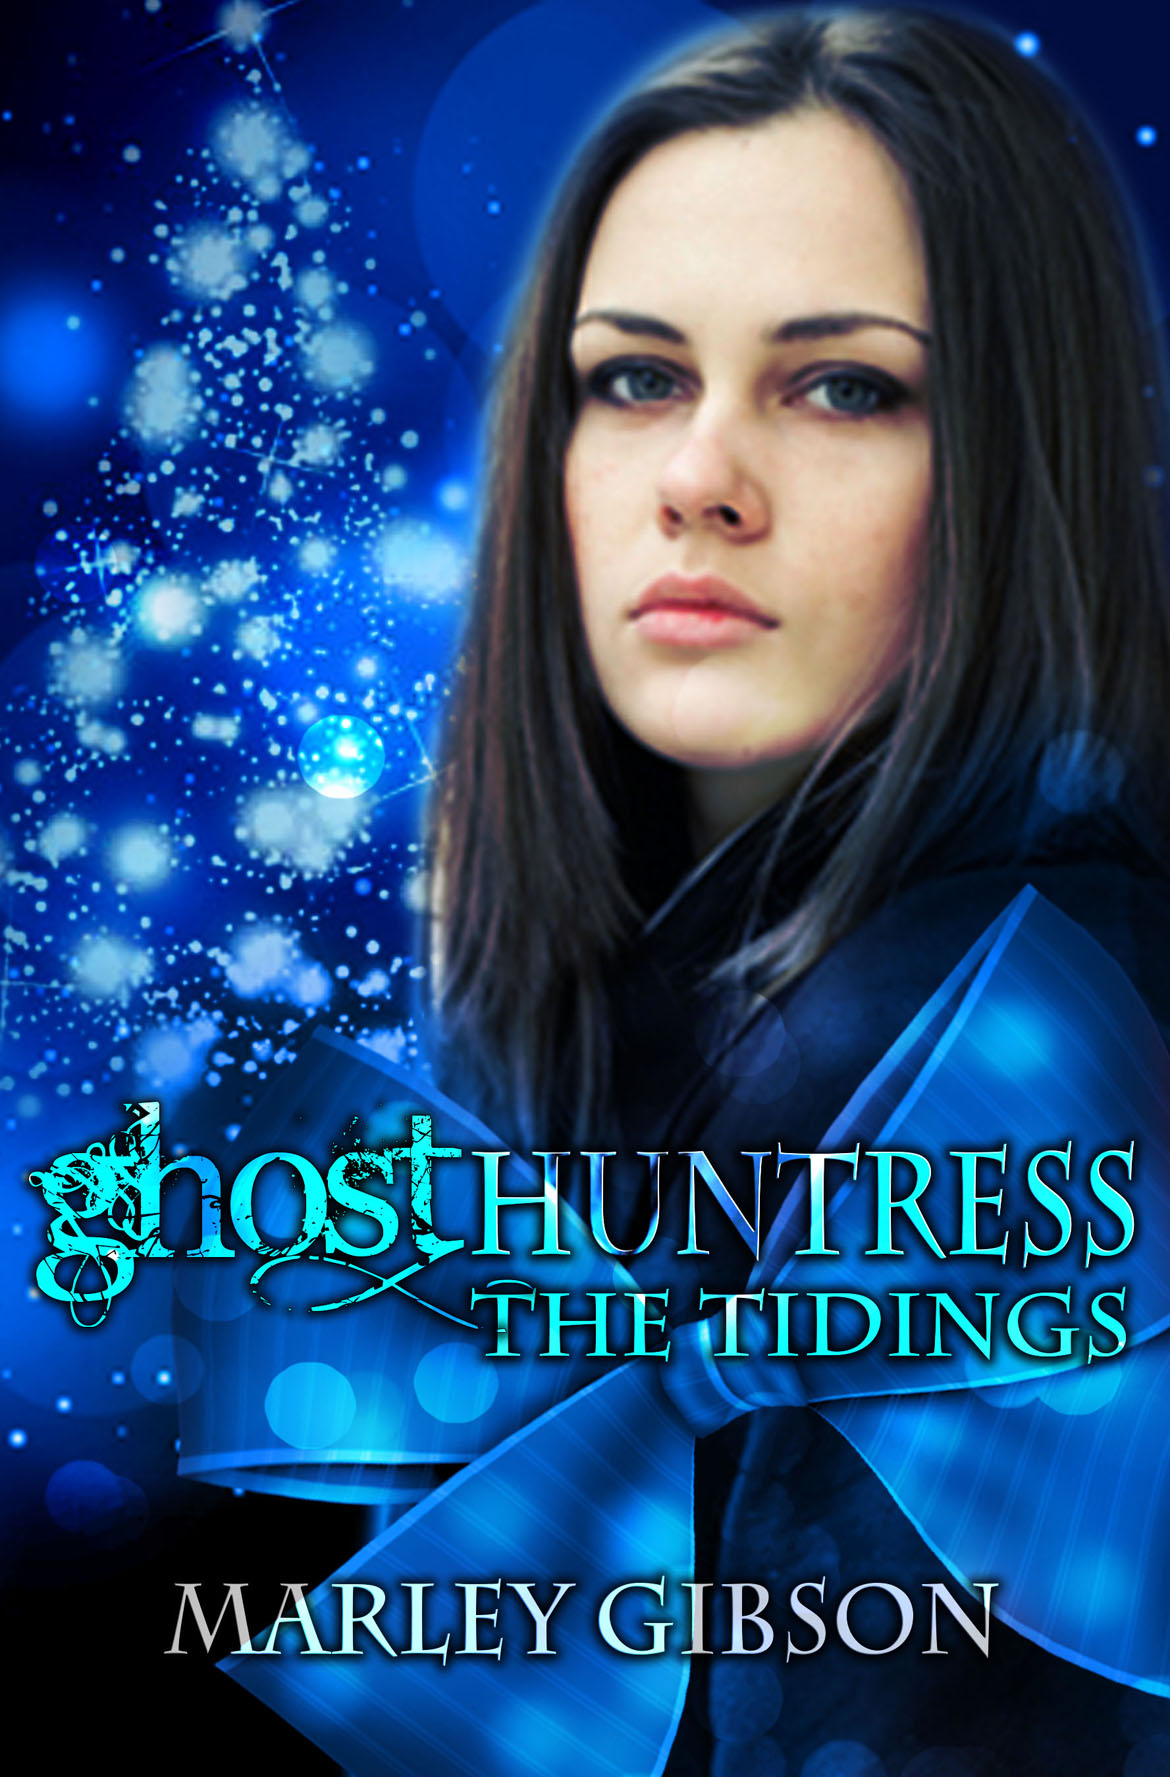 Ghost Huntress: The Tidings (A Christmas Novella)